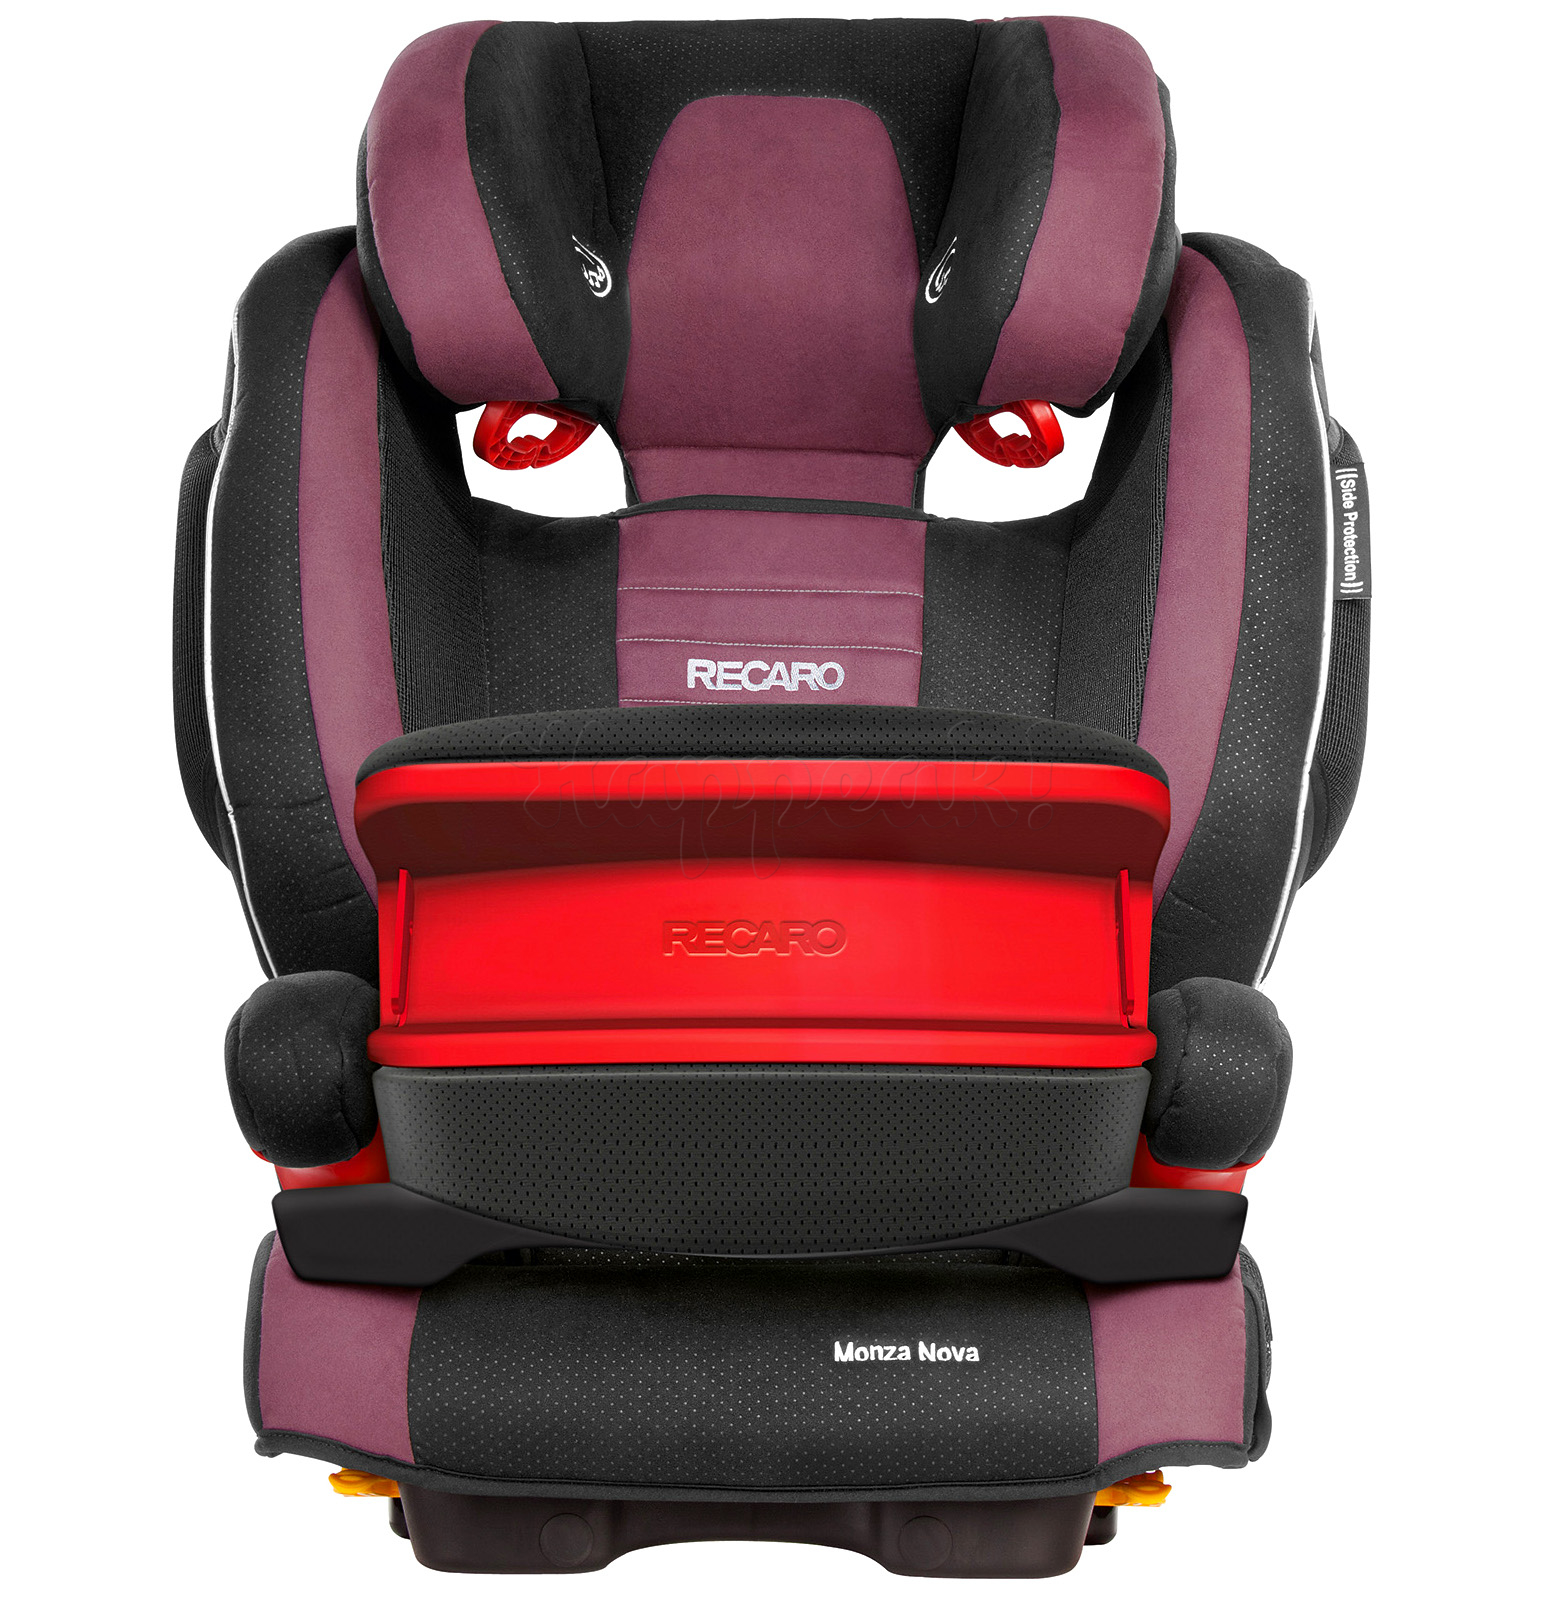 Автокресло RECARO MONZA NOVA IS SEATFIX VIOLET